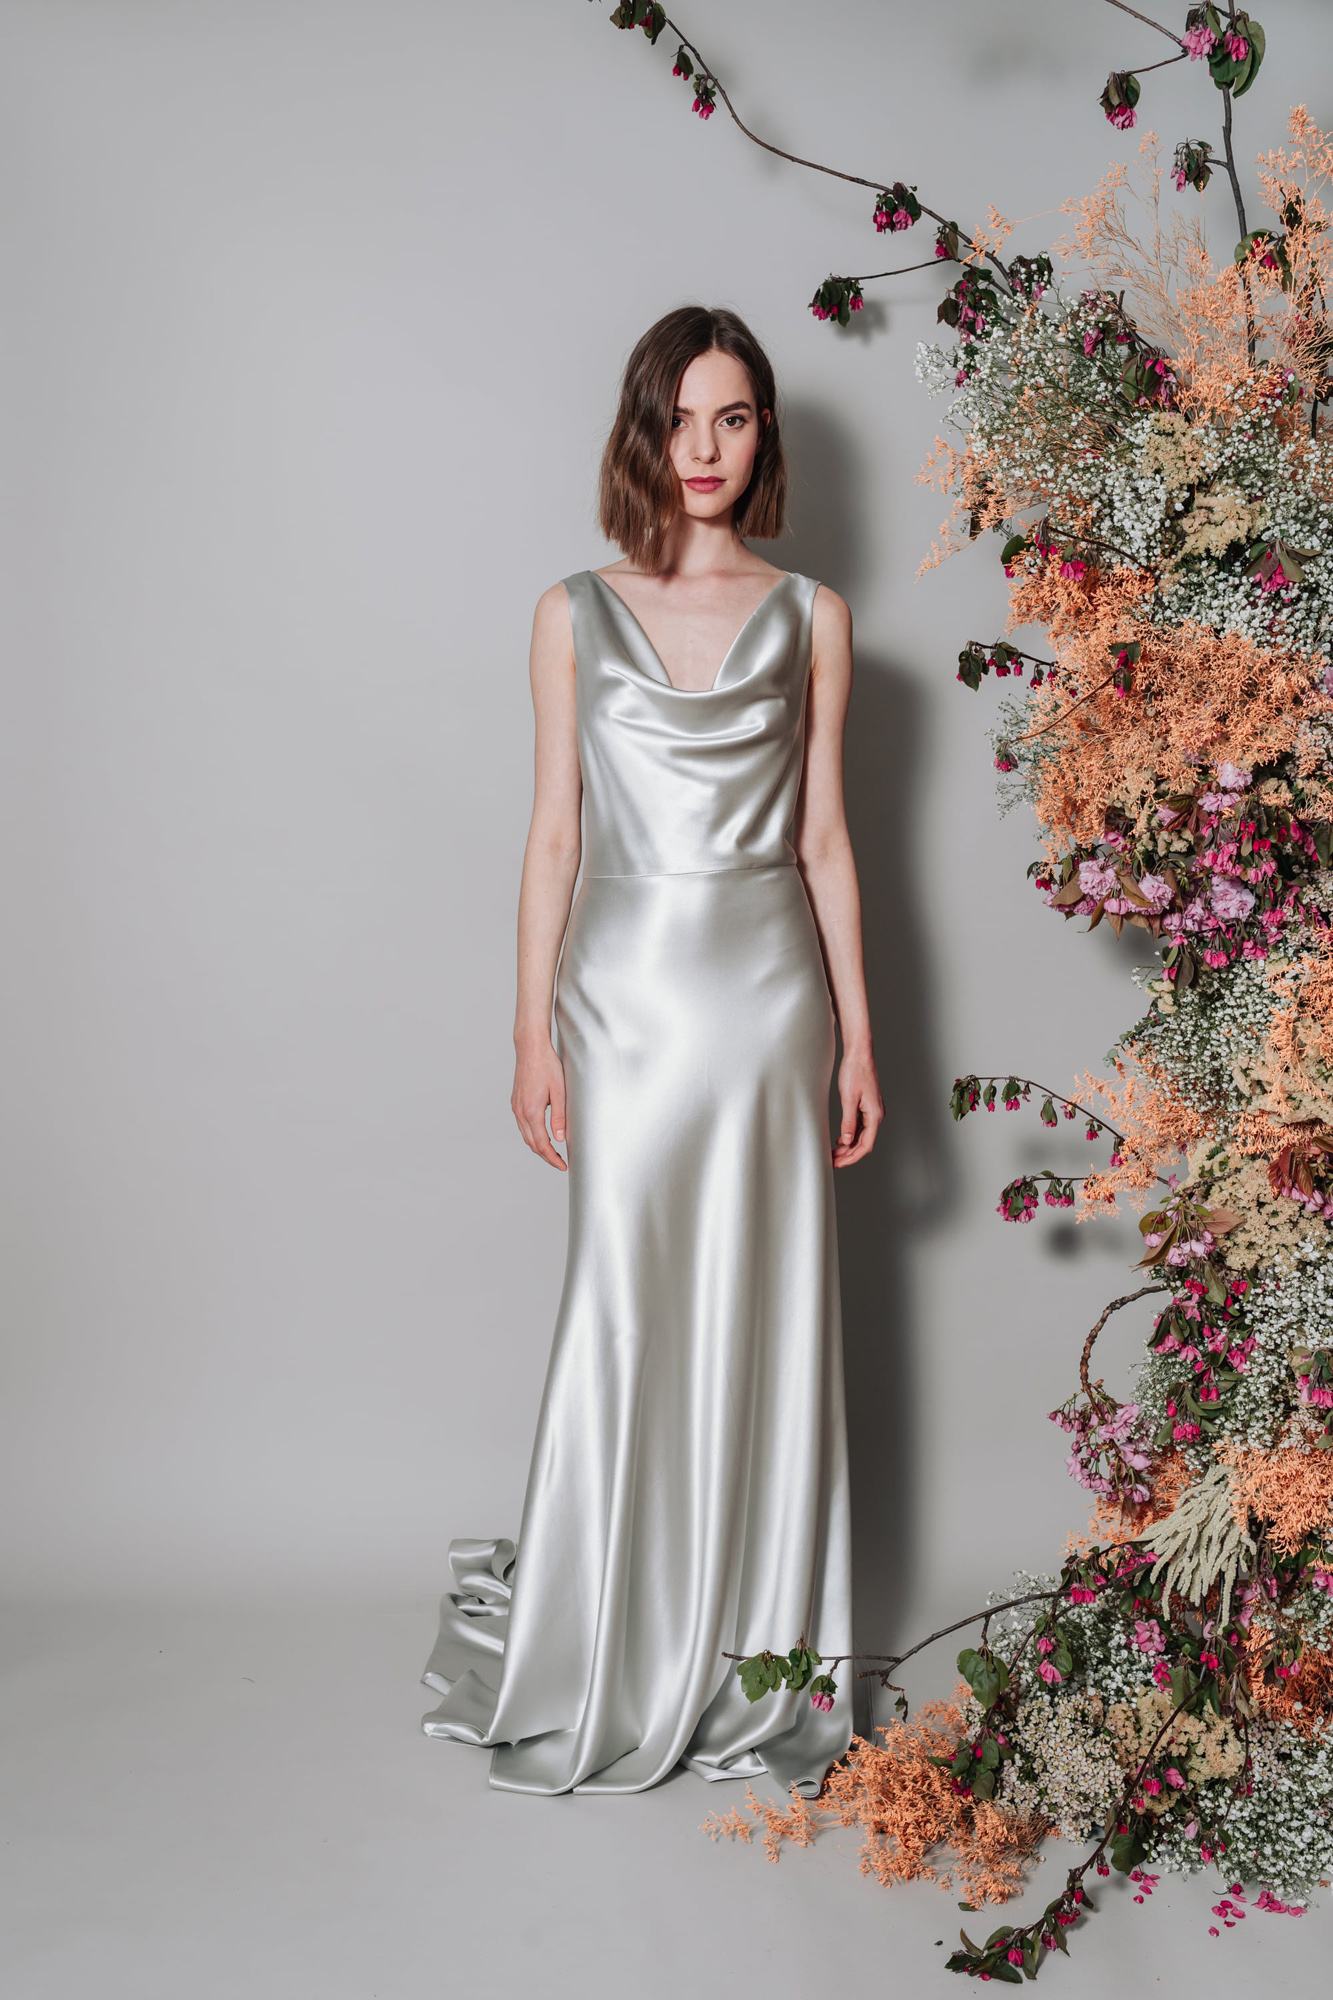 Kate-Beaumont-Sheffield-Sweet-Violet-Cowl-Neck-Bias-Cut-Silk-Wedding-Gown-2.jpg